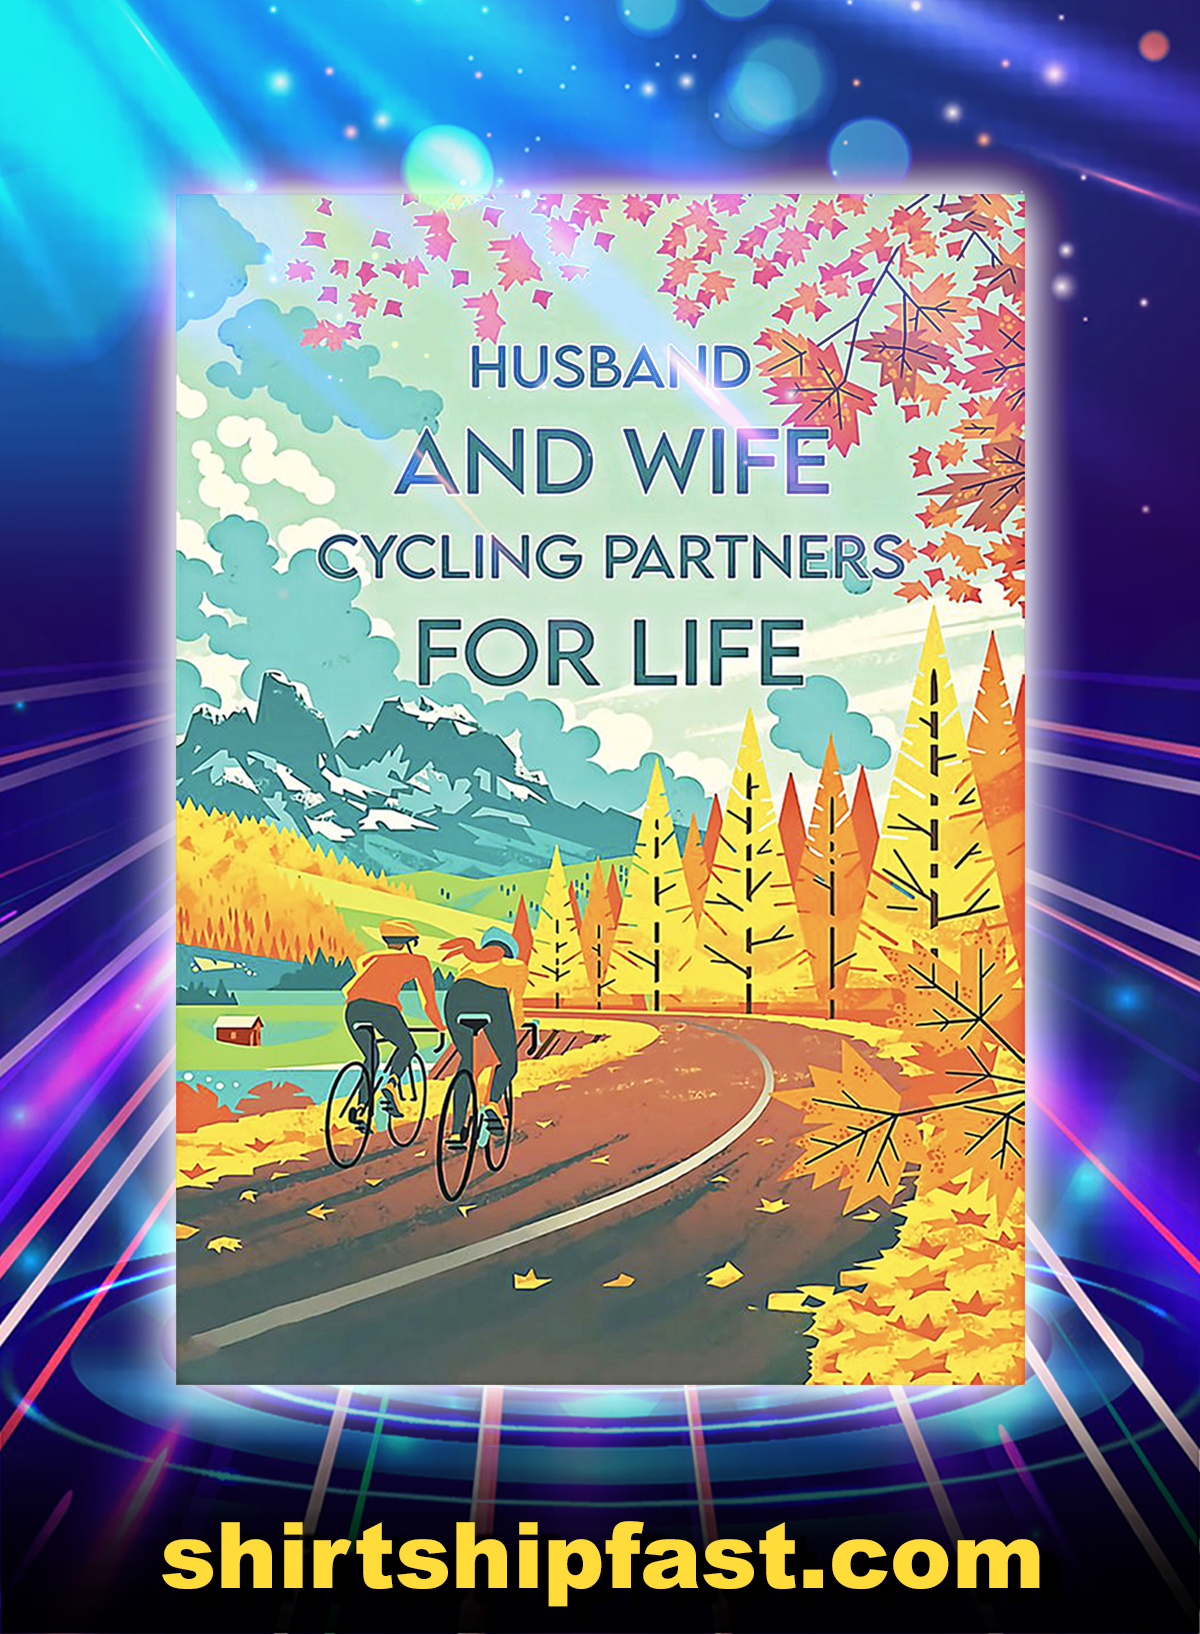 Husband and wife cycling partners for life poster - A1